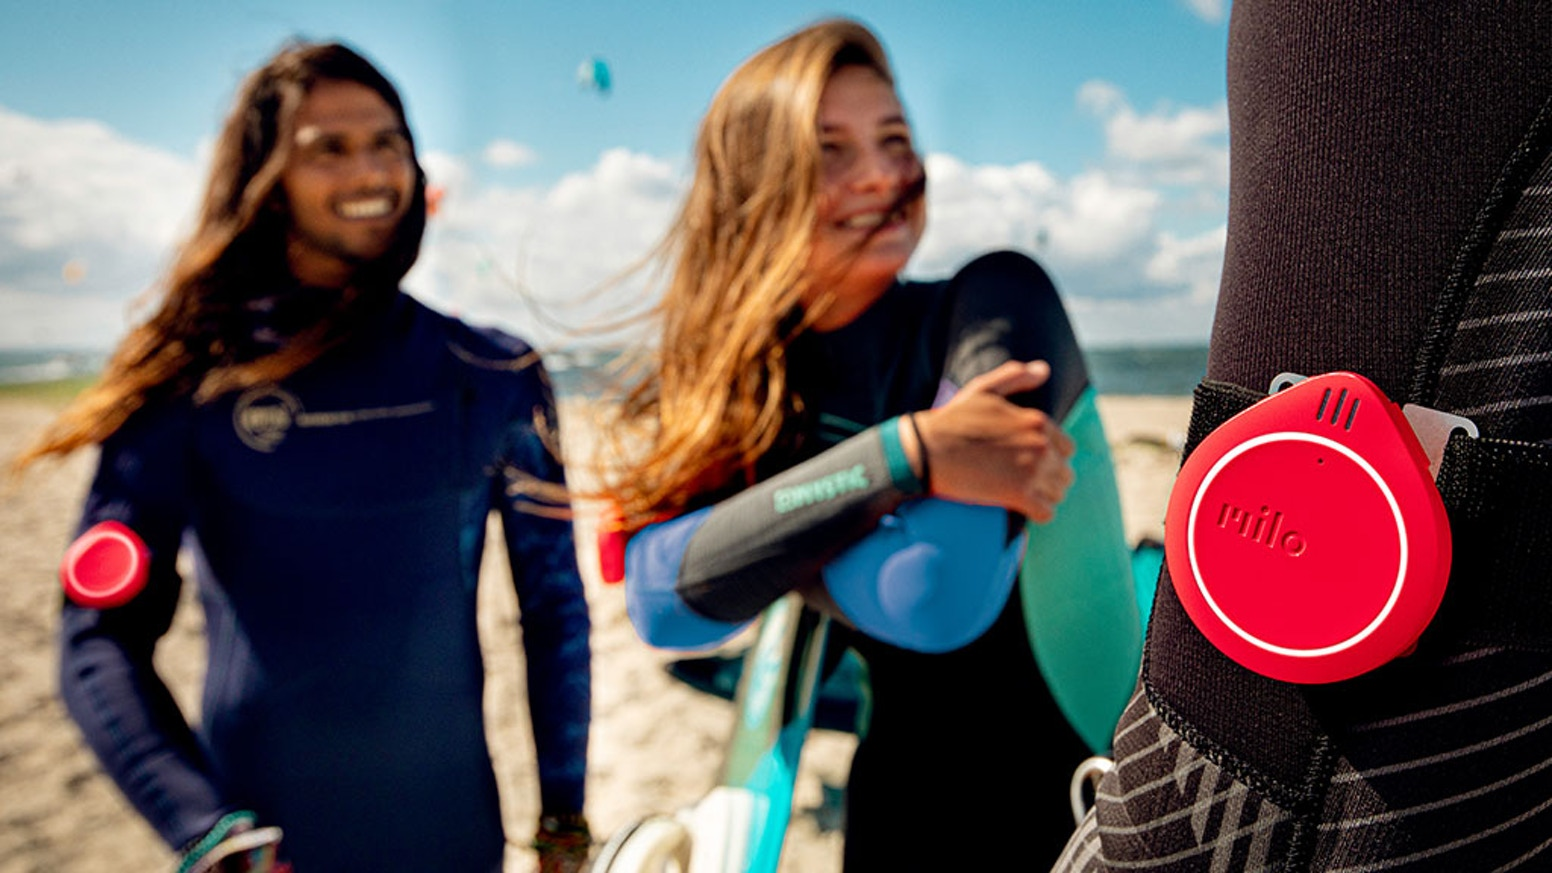 Speak with friends while you ride, surf or surf. Hands-free, phone-free.For adventures on the slopes, trails and water.